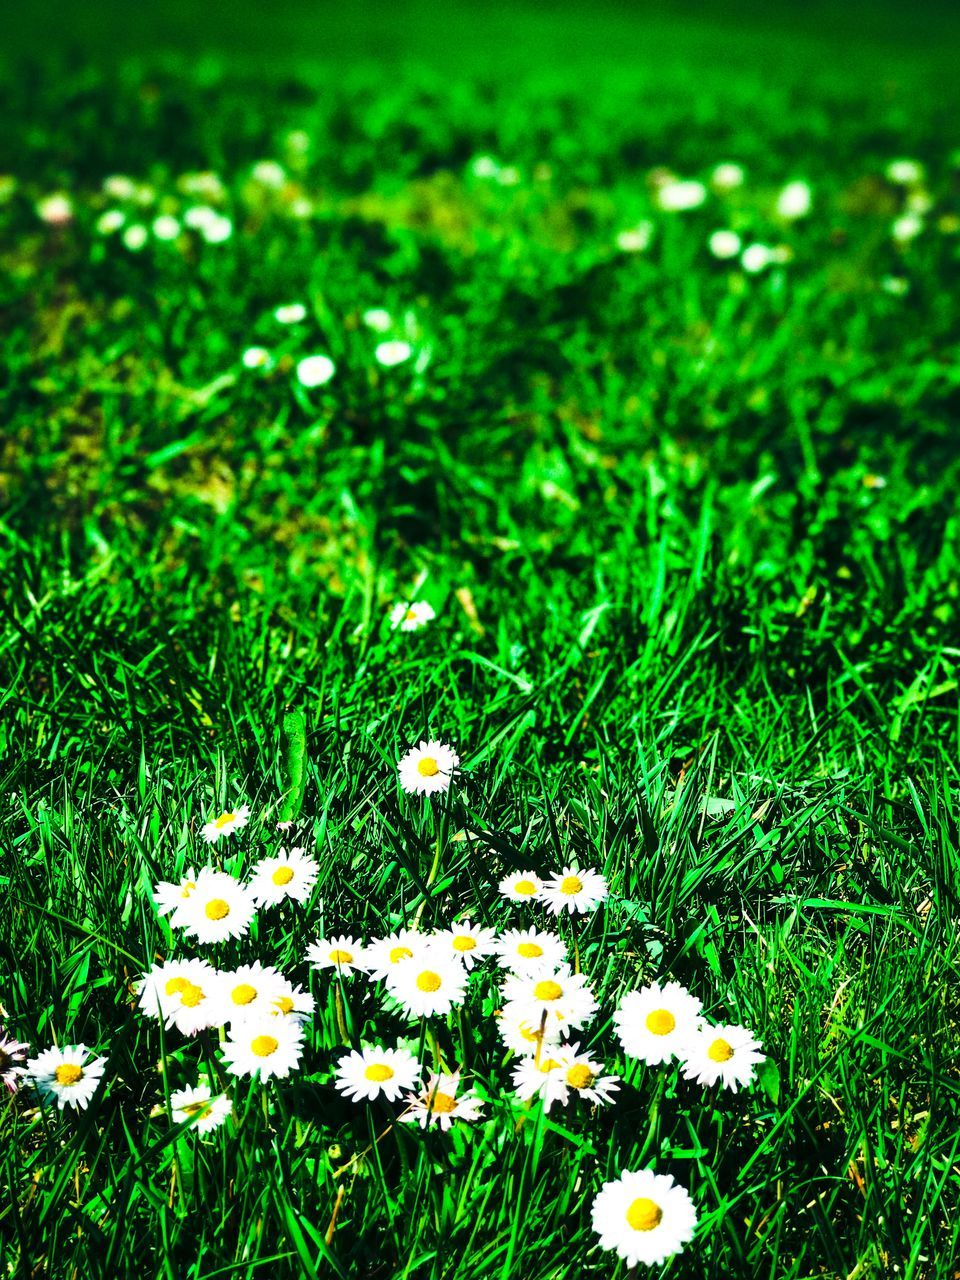 flower, nature, growth, grass, flora, spring, vegetation, freshness, beauty in nature, field, delicate, green color, no people, blooming, uncultivated, plant, fragility, summer, outdoors, flower head, day